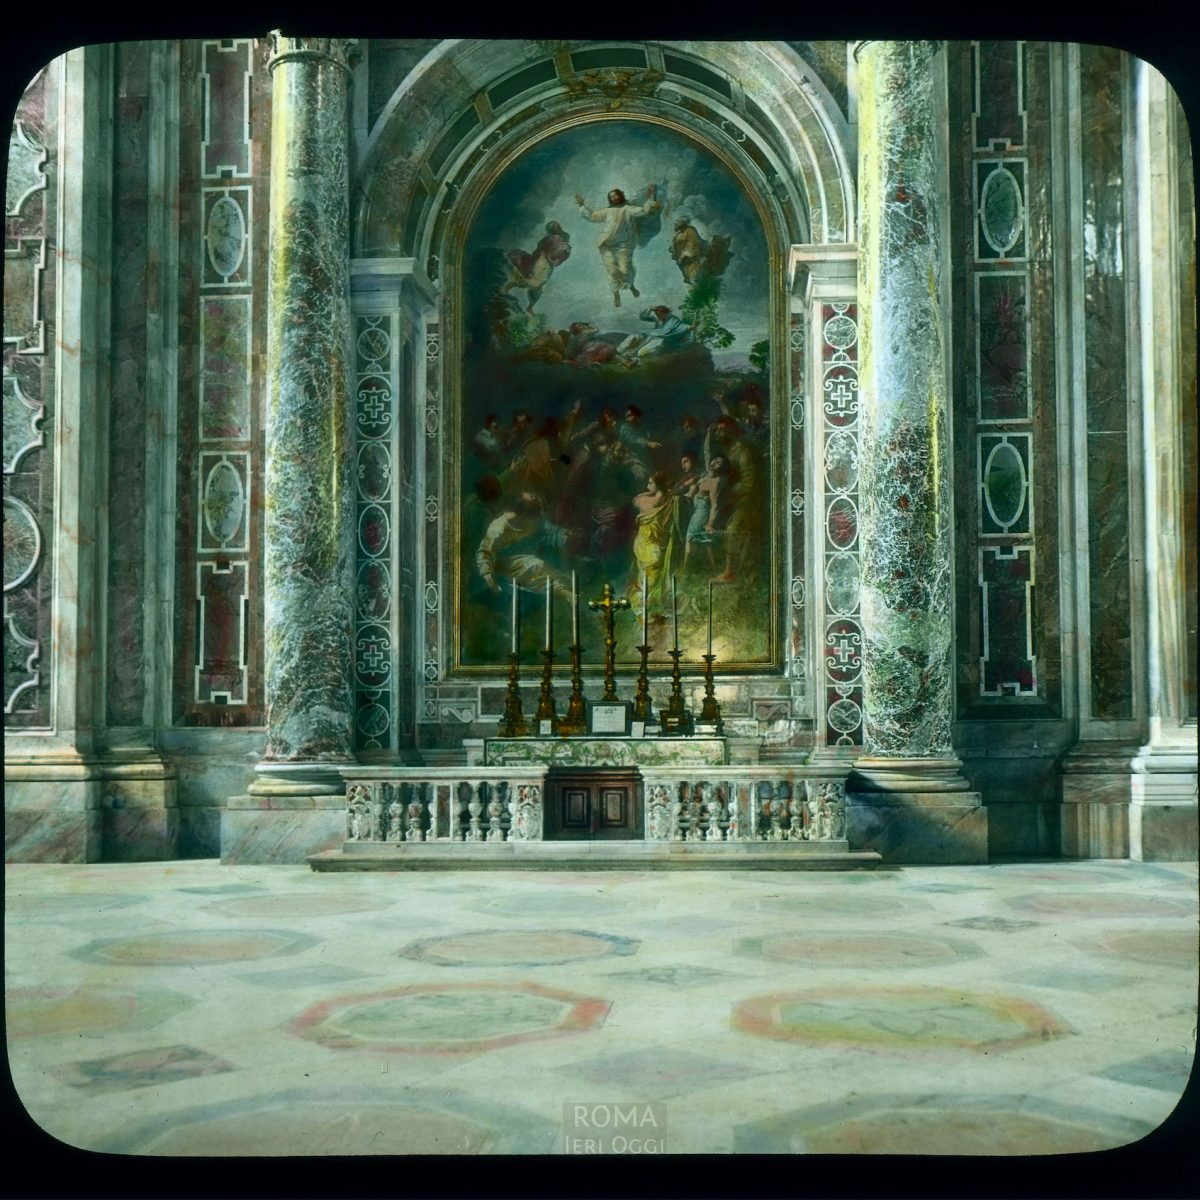 Vatican City. St. Peter's Basilica: interior, altar of the Transfiguration, mosaic after Raphael View in tinted lantern slide, ca. 1919-1938. The basilica dates from ca. 1506-1626.